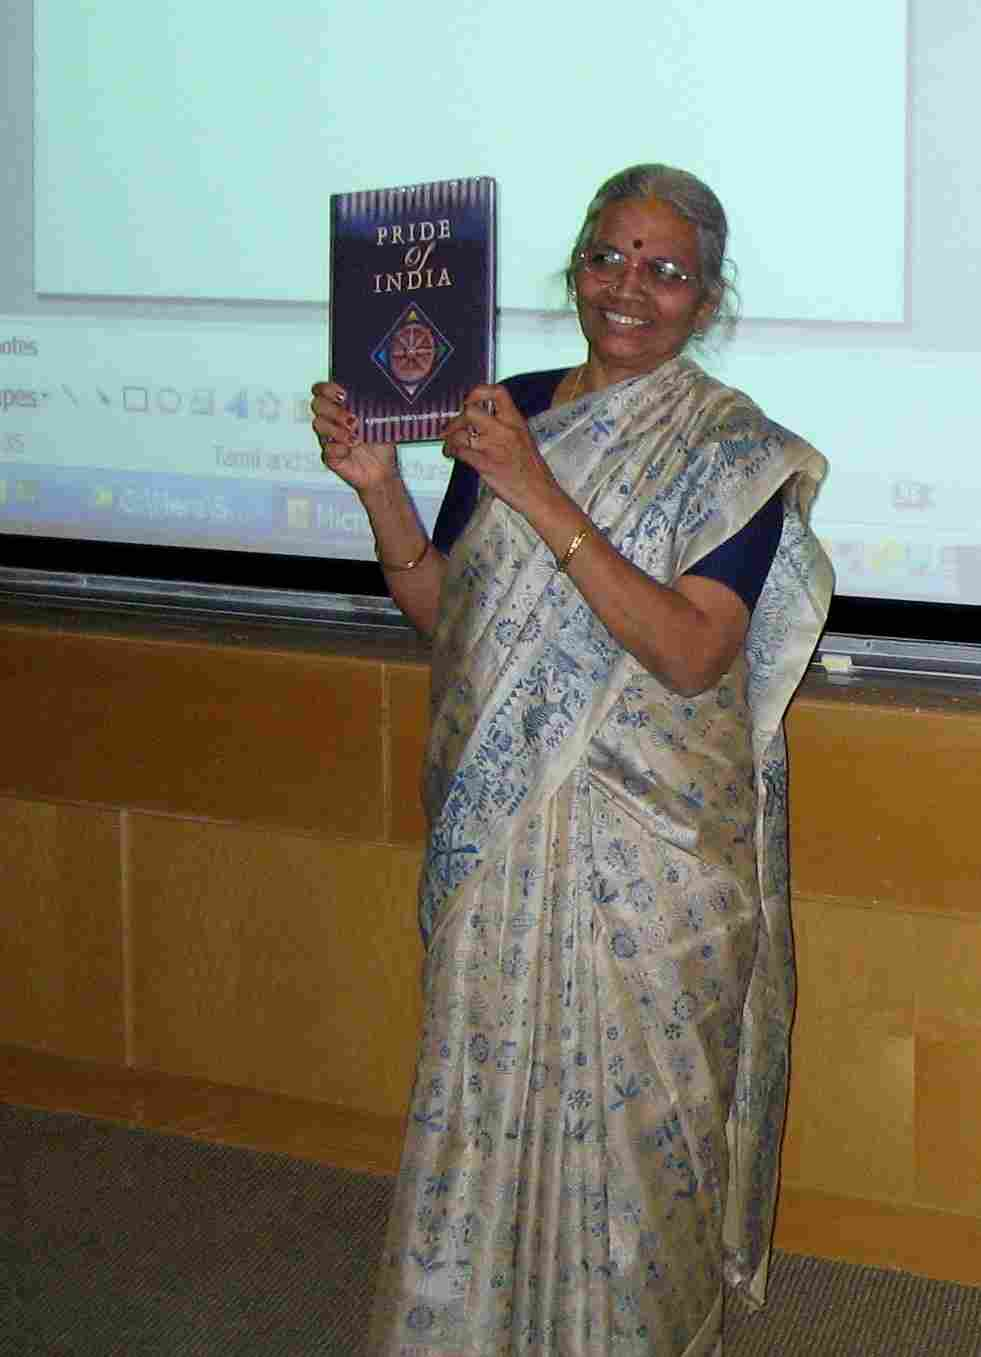 Meru Foundation And MIT Samskritam Presents Sanskrit And Tamil Language And Literature